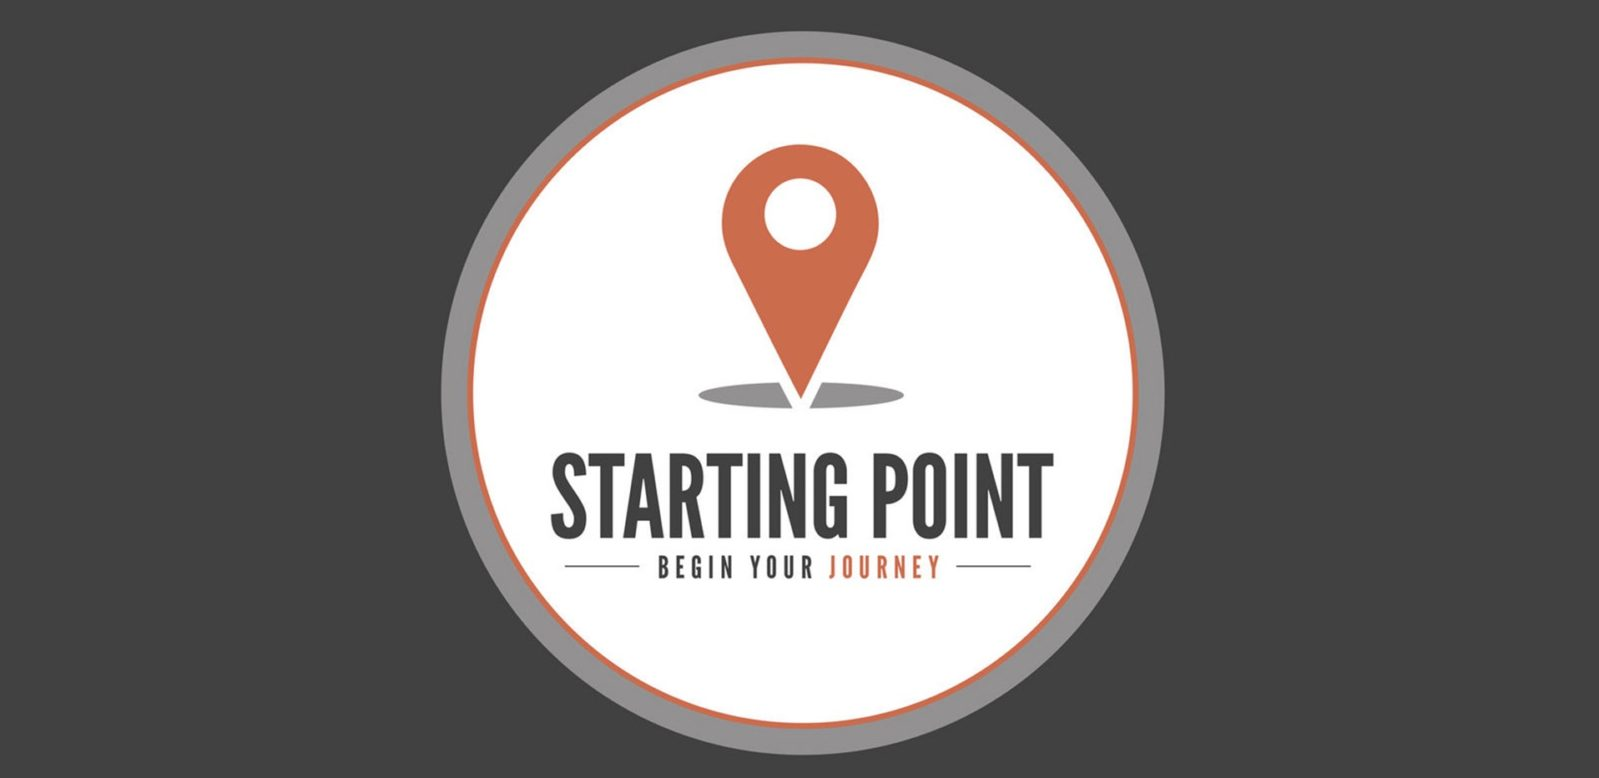 Starting Point graphic